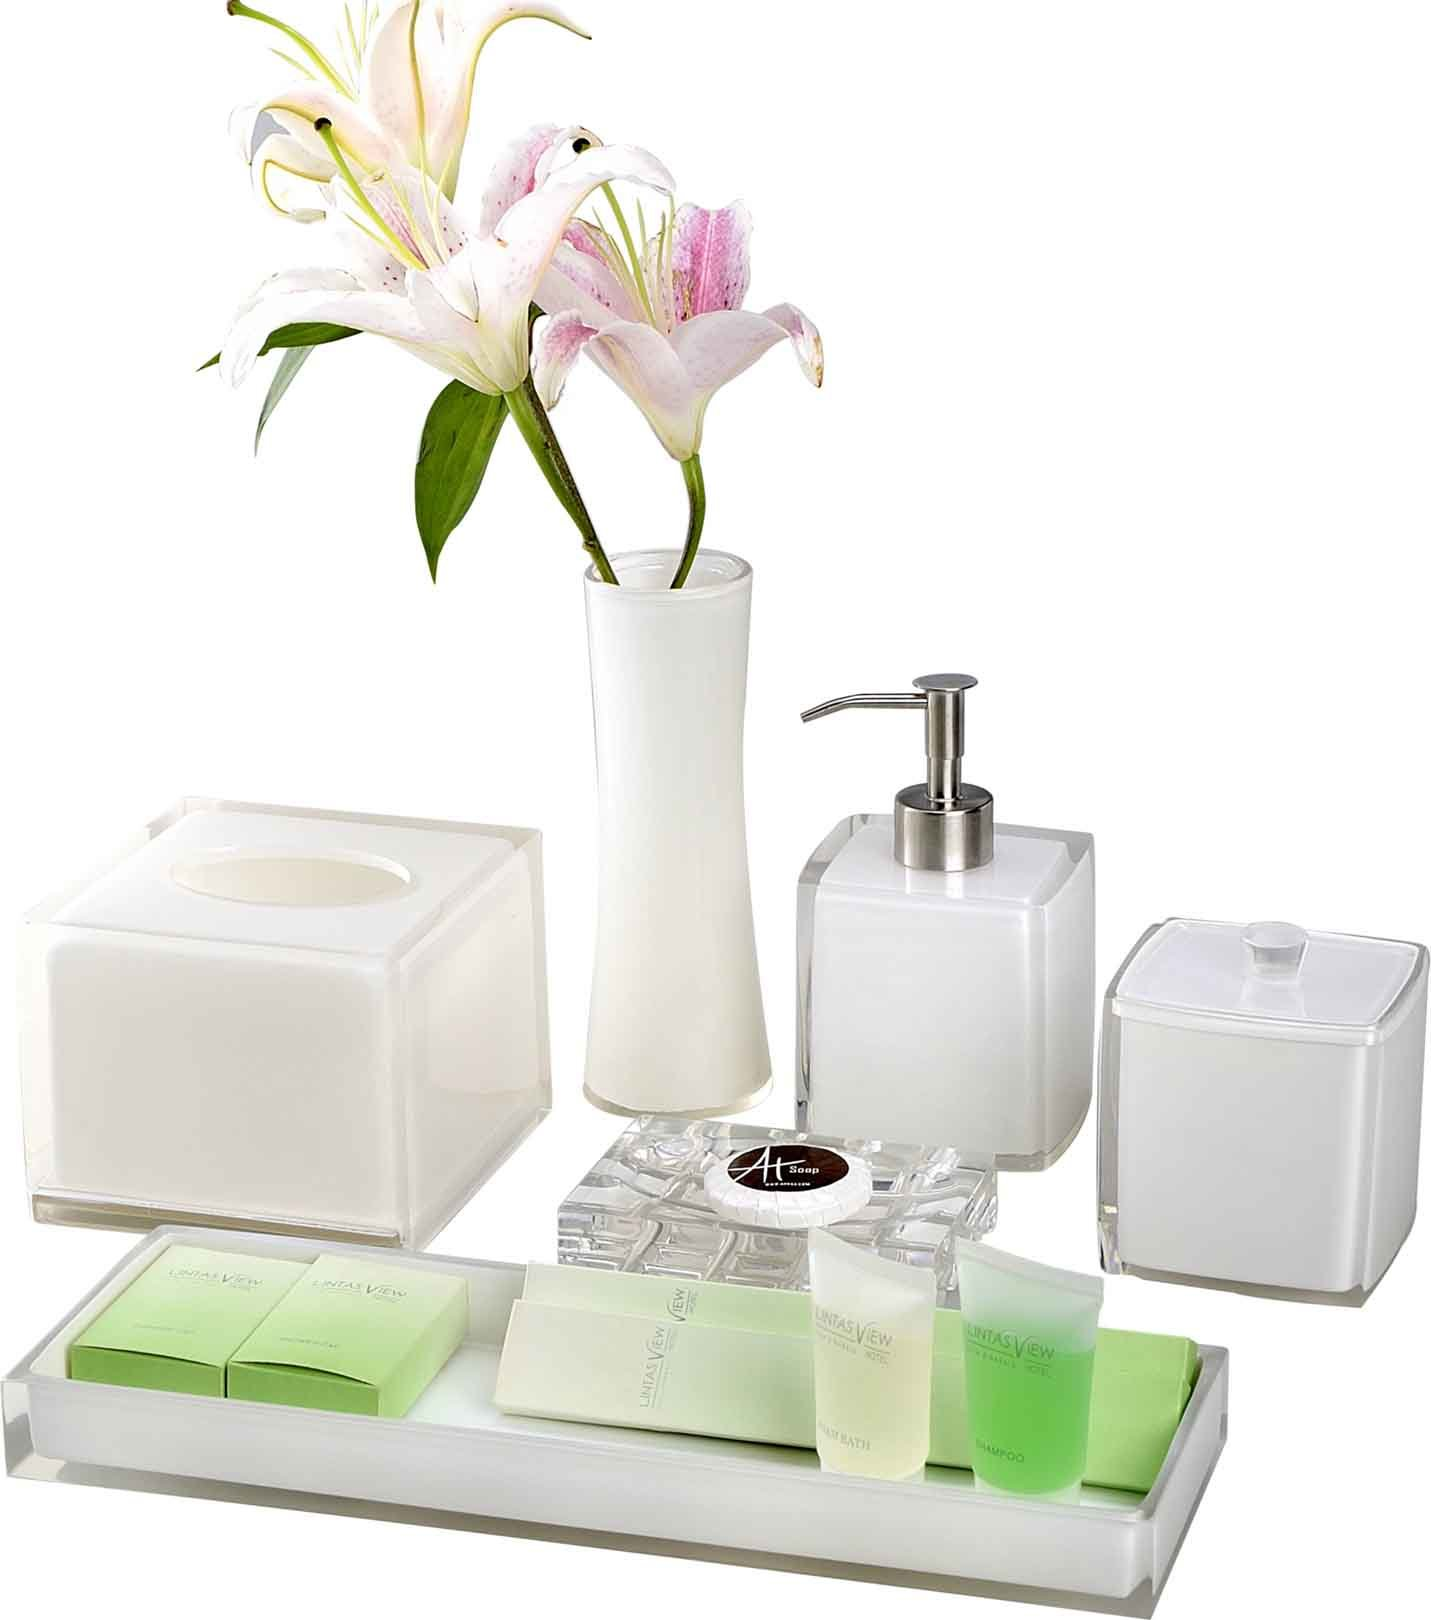 White Crystal Amenities Holder Set Hotel Balfour Bathroom Accessories Set